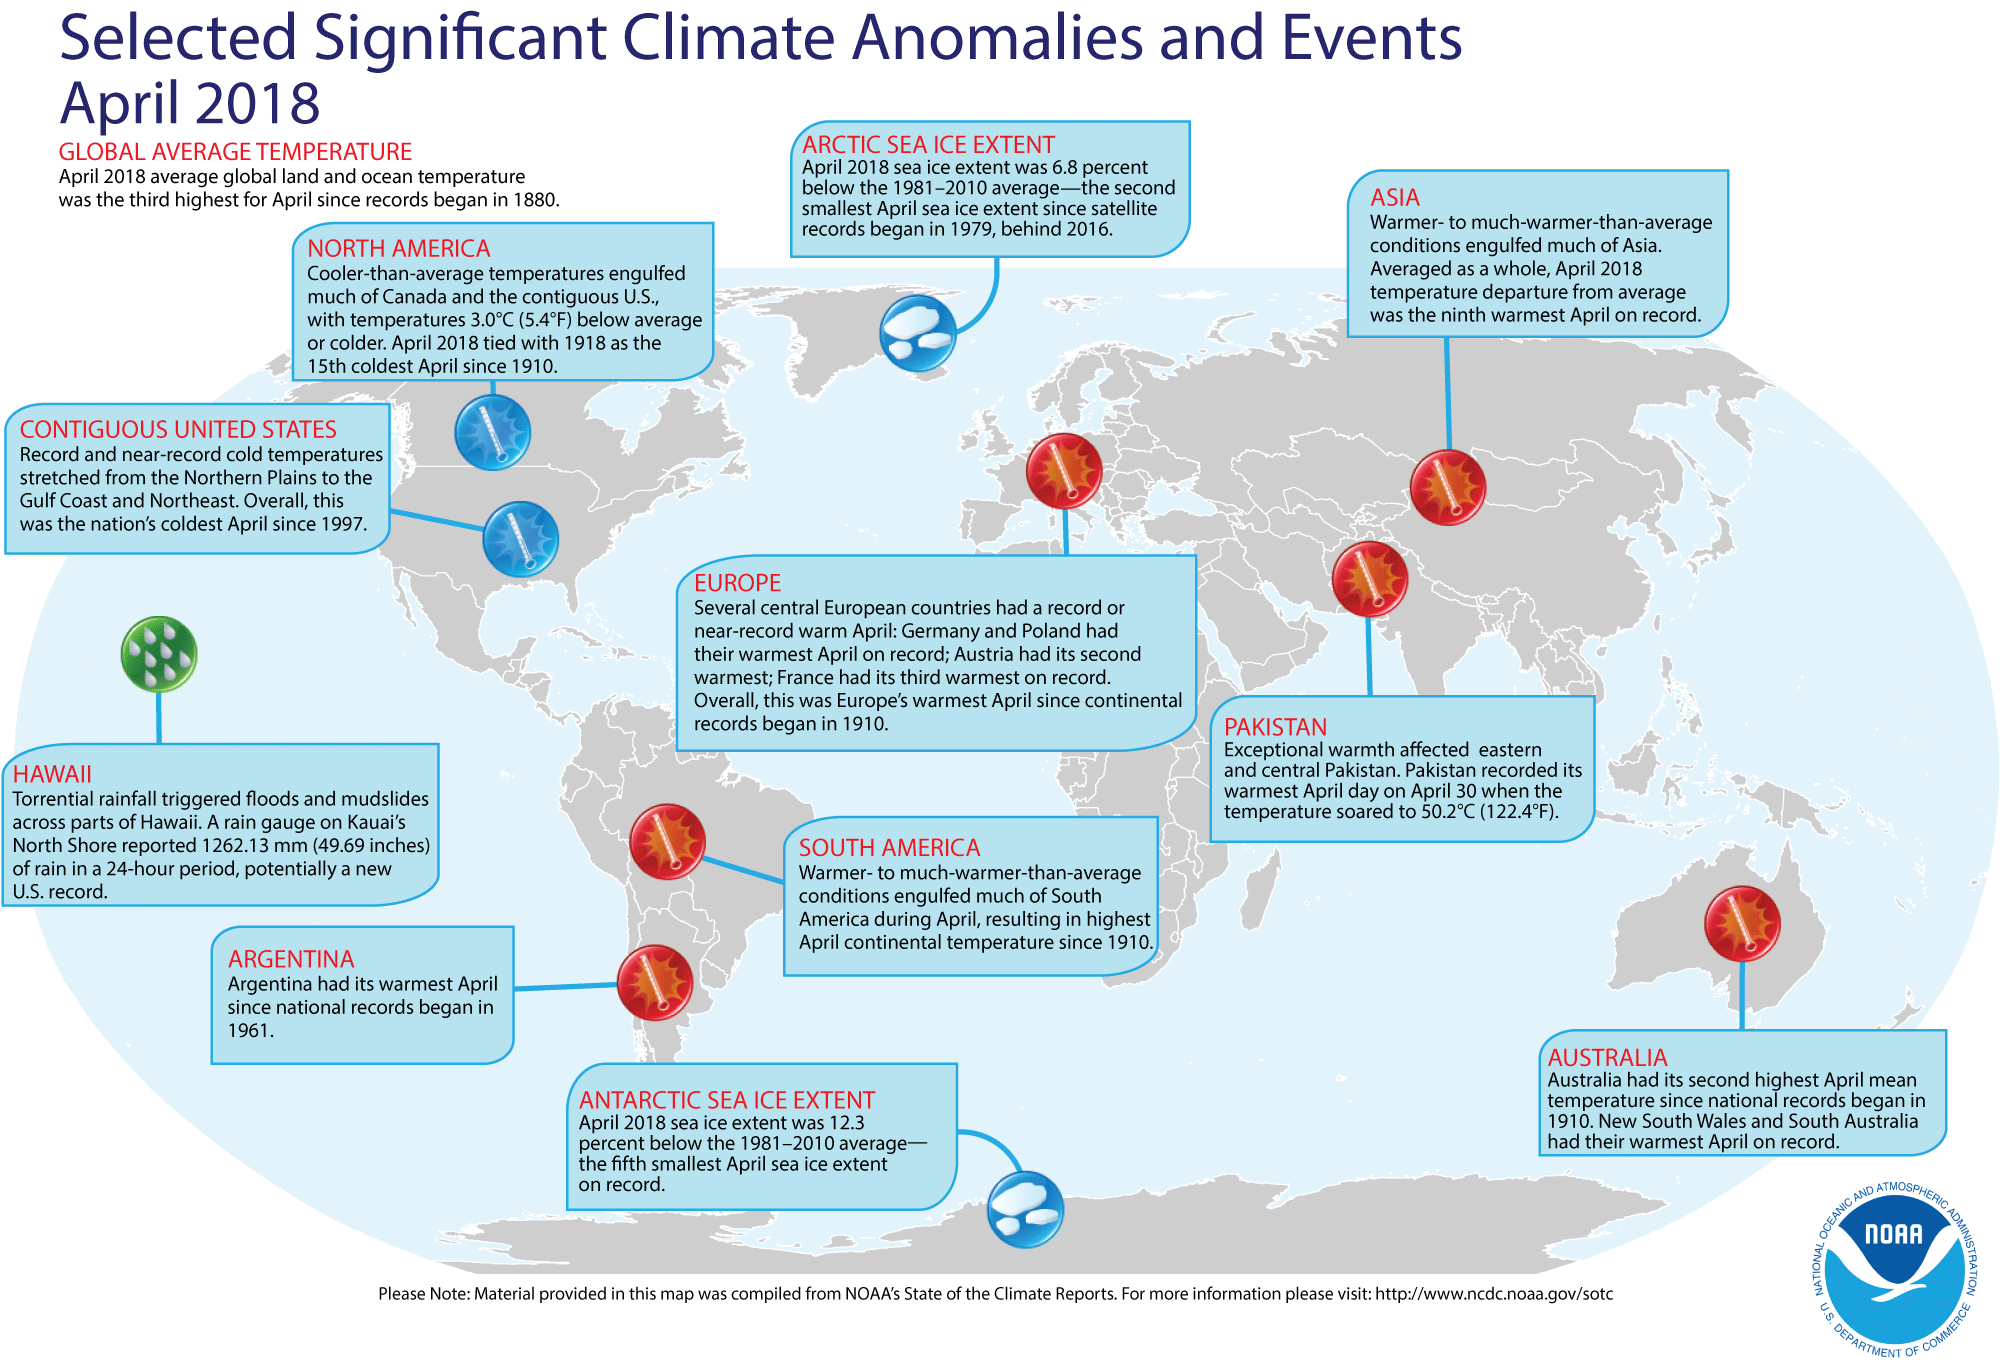 https://www.ncei.noaa.gov/sites/default/files/sites/default/files/april-2018-global-significant-events-map.png